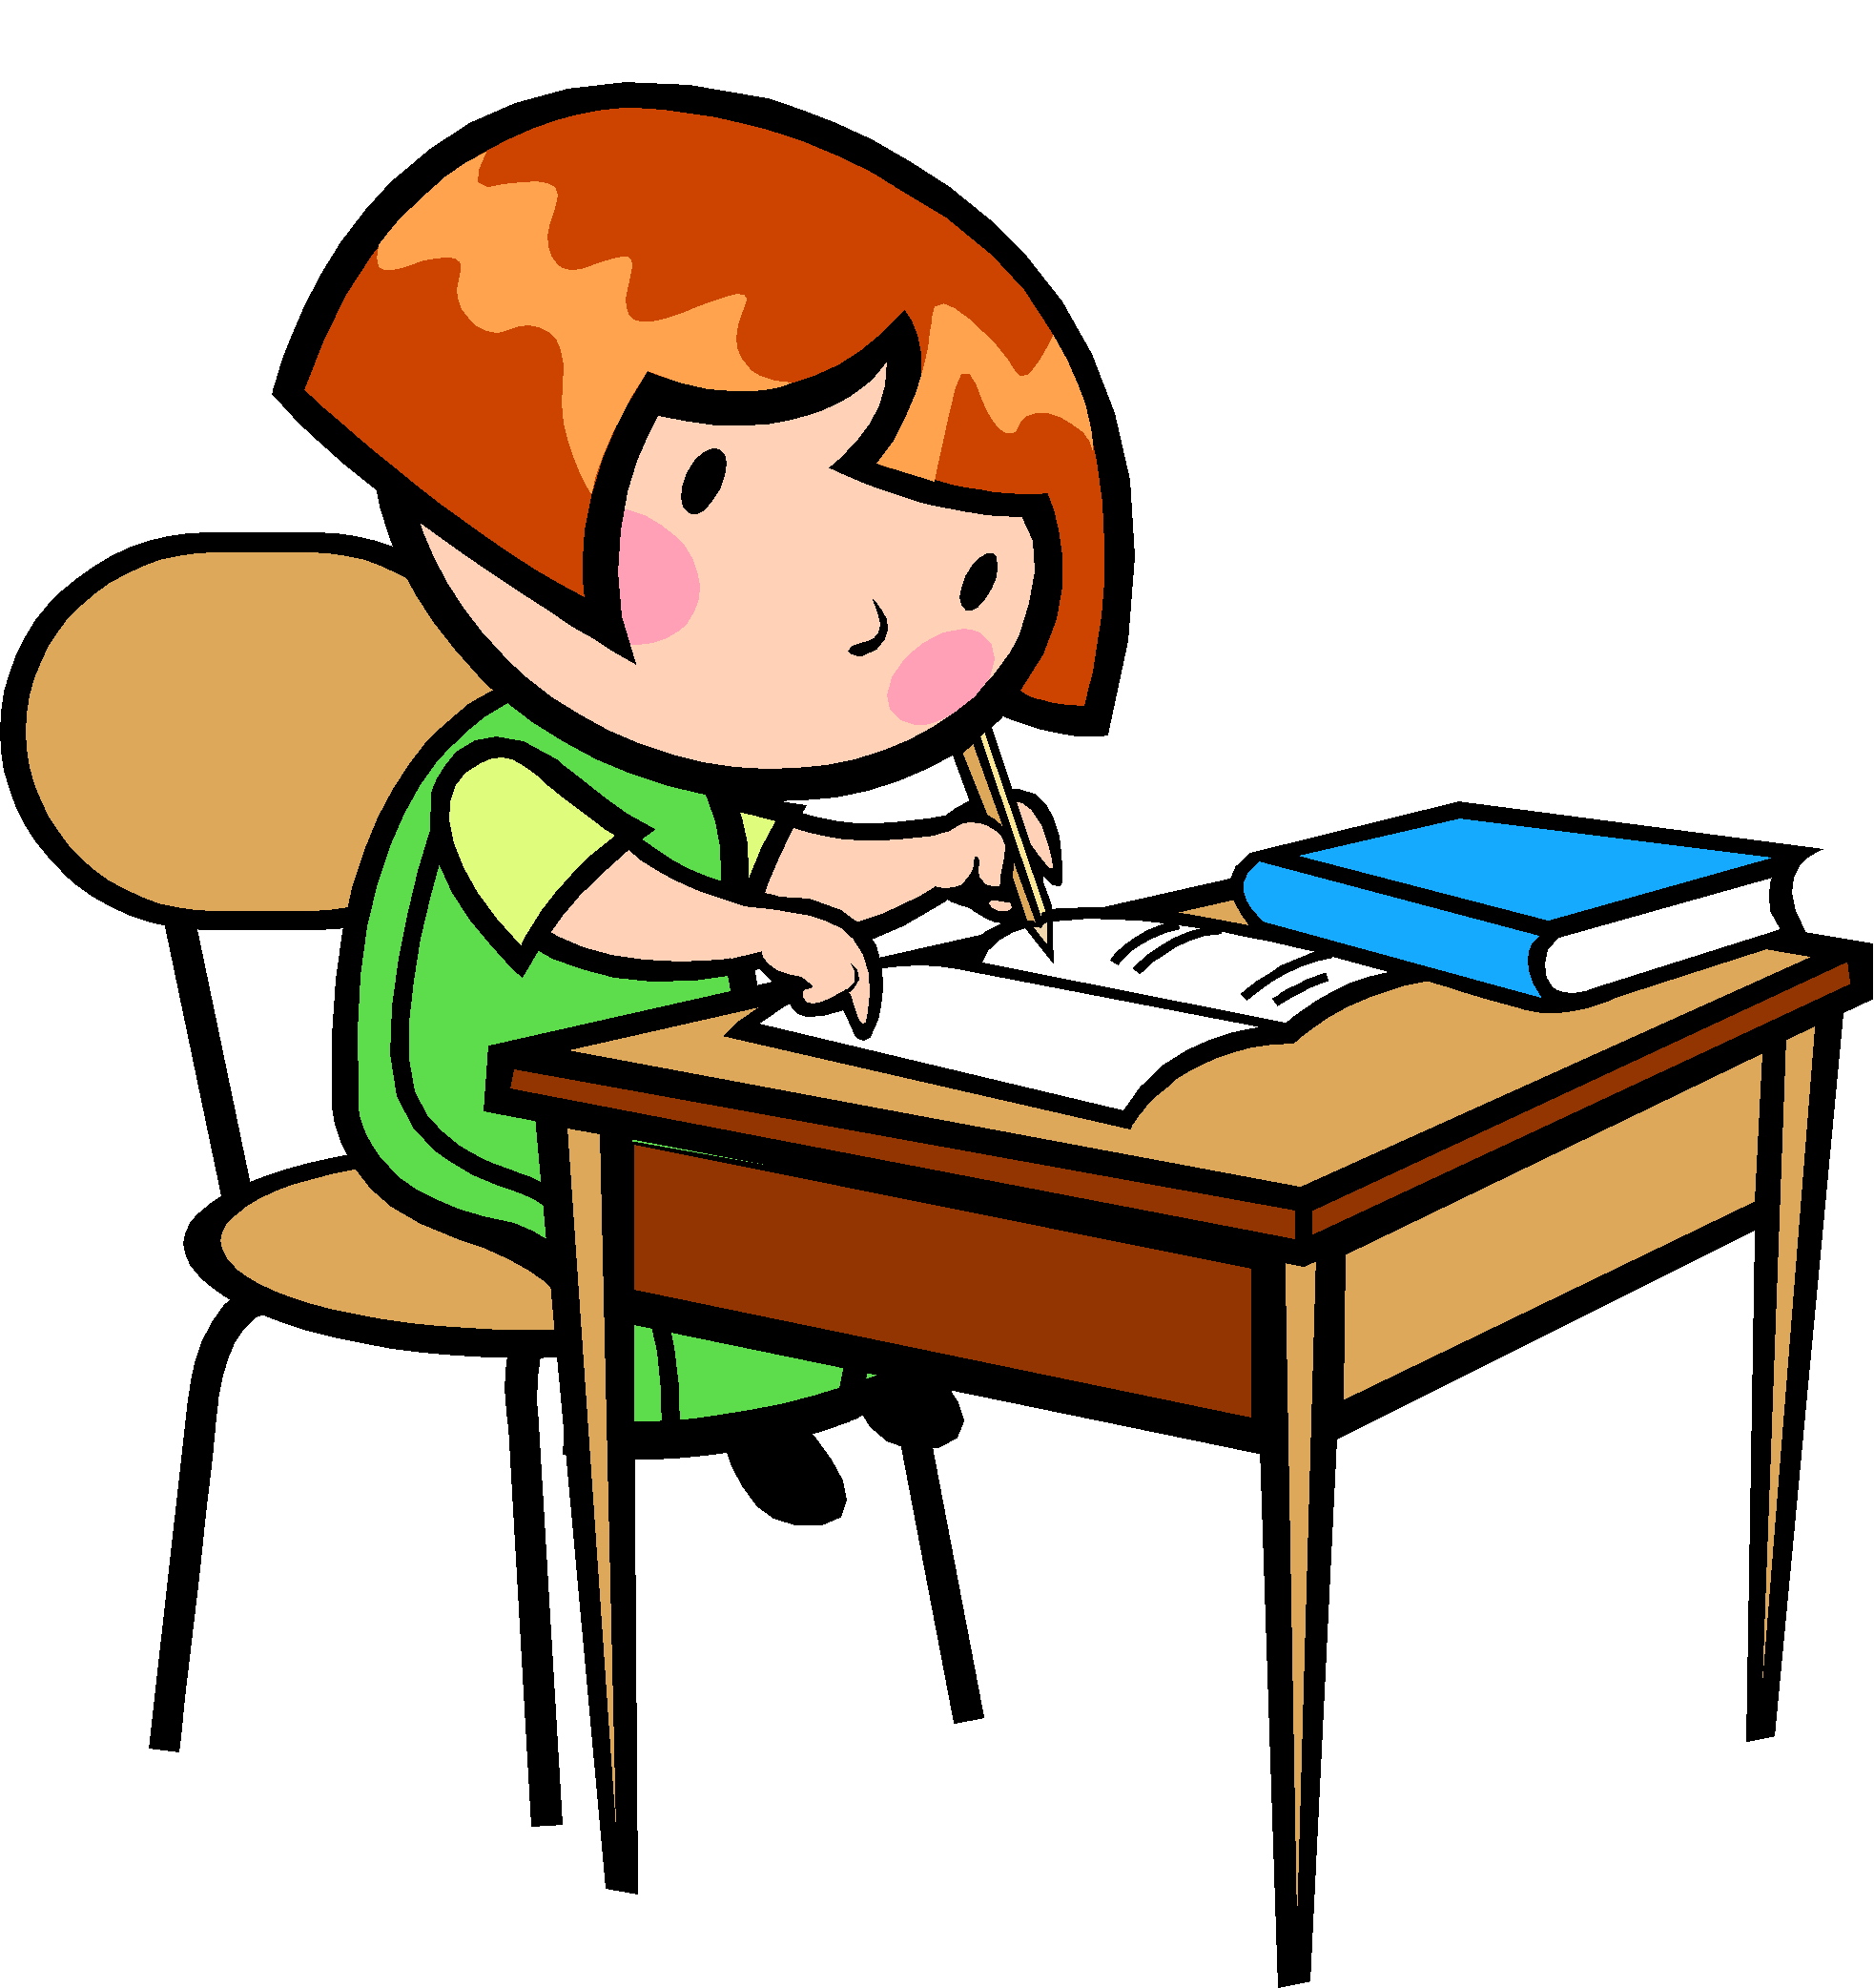 Writing Clip Png - Free Writing Clipart Png, Download Free Clip Art, Free Clip Art on ...